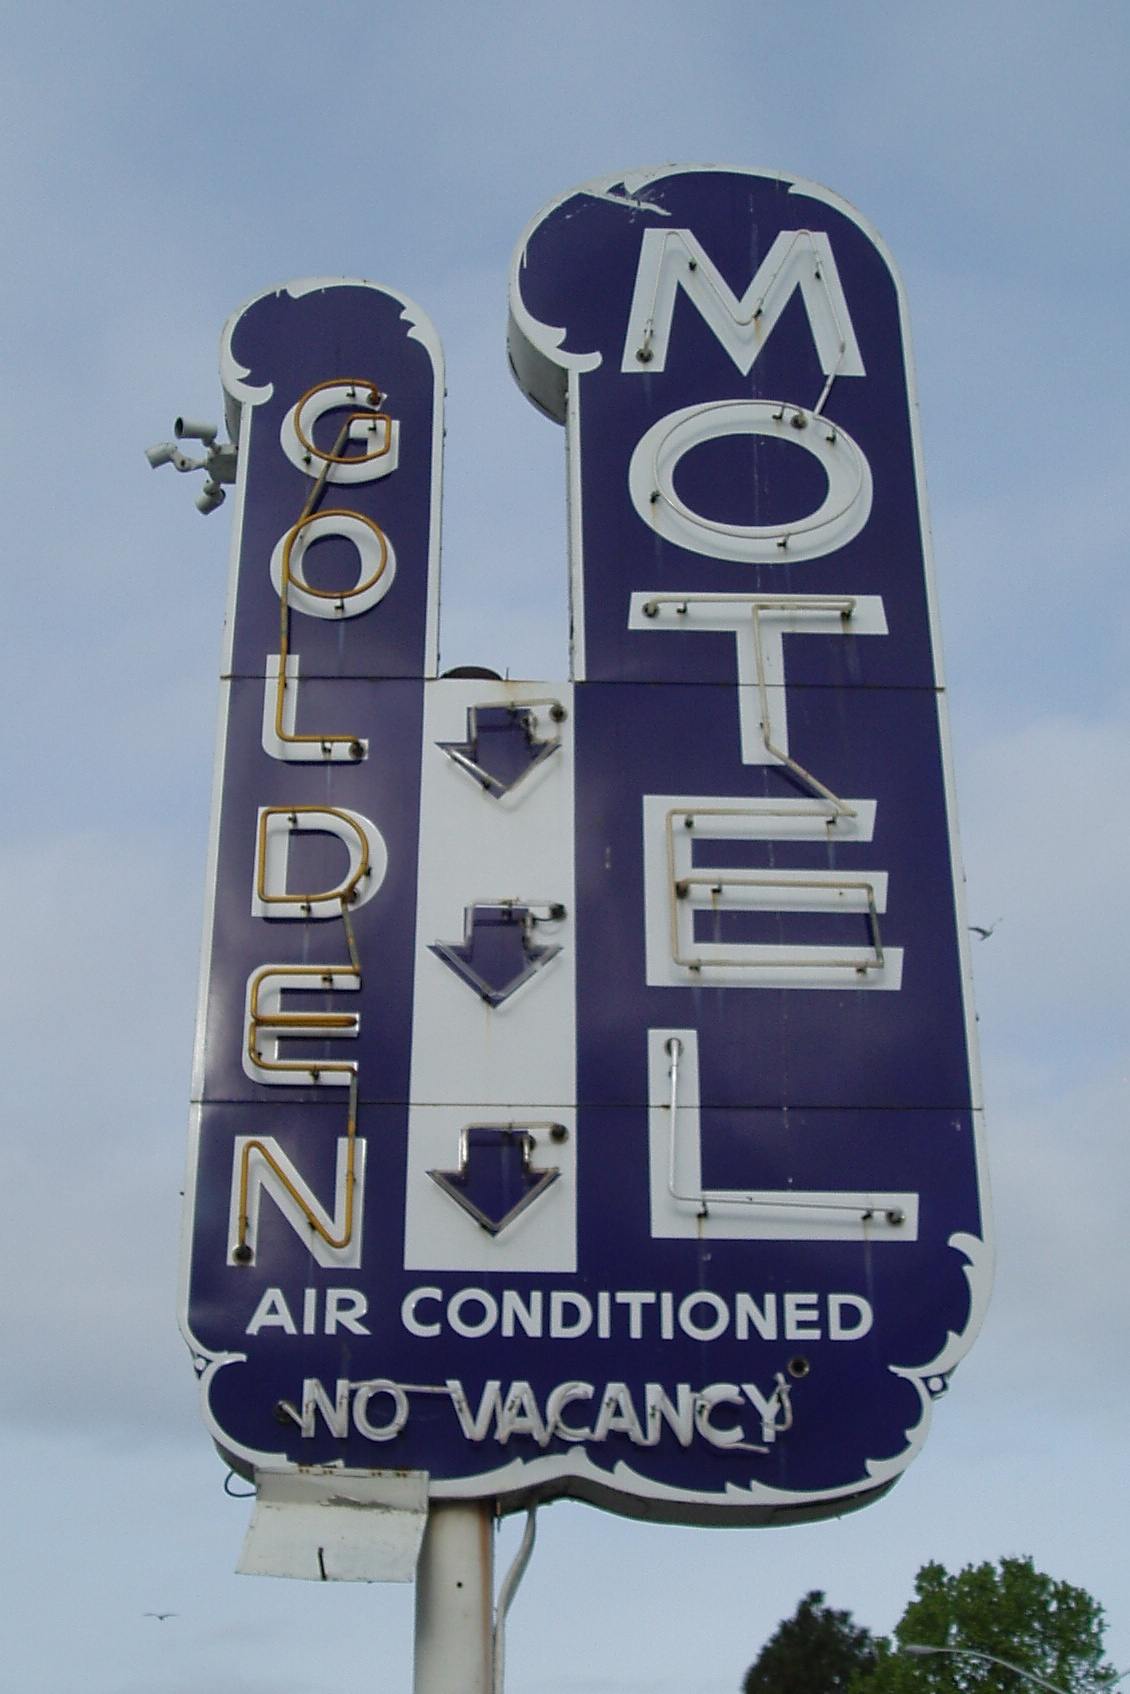 Golden Motel - 1917 West Capitol Avenue, West Sacramento, California U.S.A. - March 28, 2008